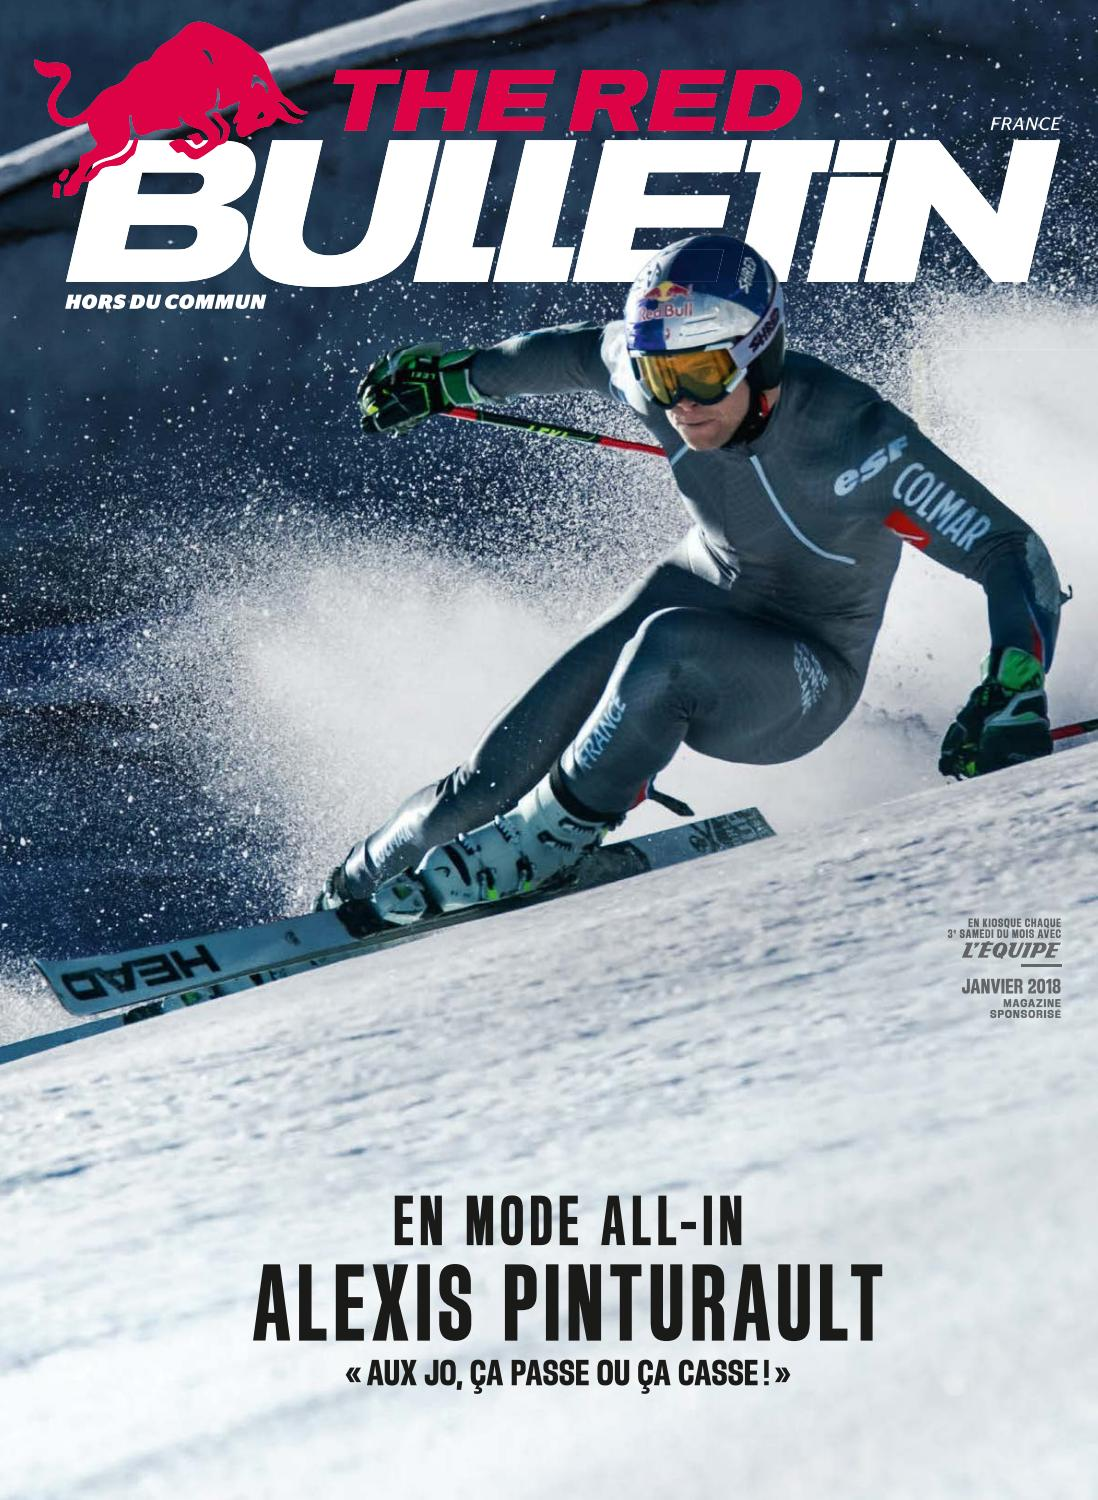 The Red Bulletin Janvier 2018 - FR by Red Bull Media House - issuu d442799c83c